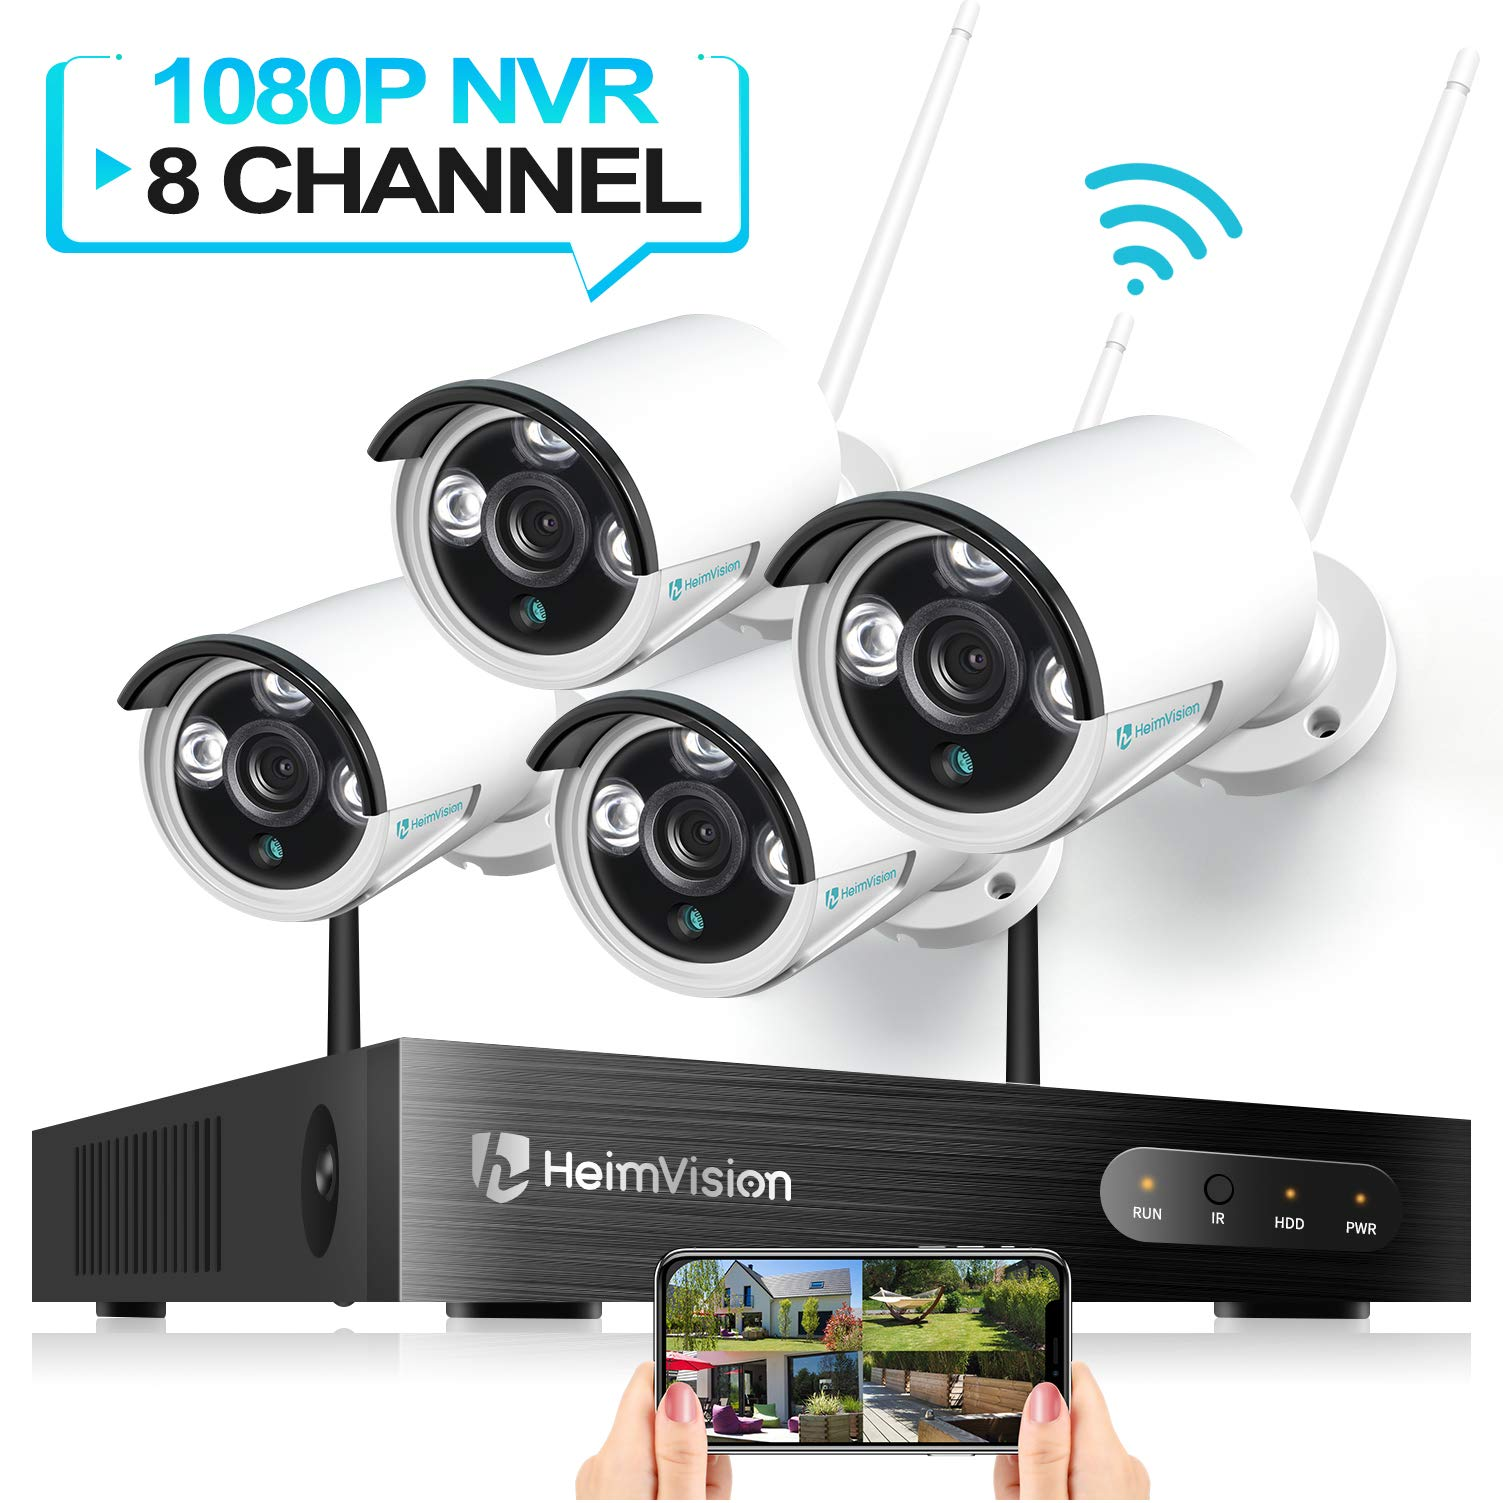 HeimVision HM241 WiFi Security Camera System, 8CH 1080P NVR 4Pcs 960P Outdoor/ Indoor WiFi Surveillance Cameras with Night Vision, Weatherproof, Motion Detection, Remote Monitoring, No Hard Drive by heimvision